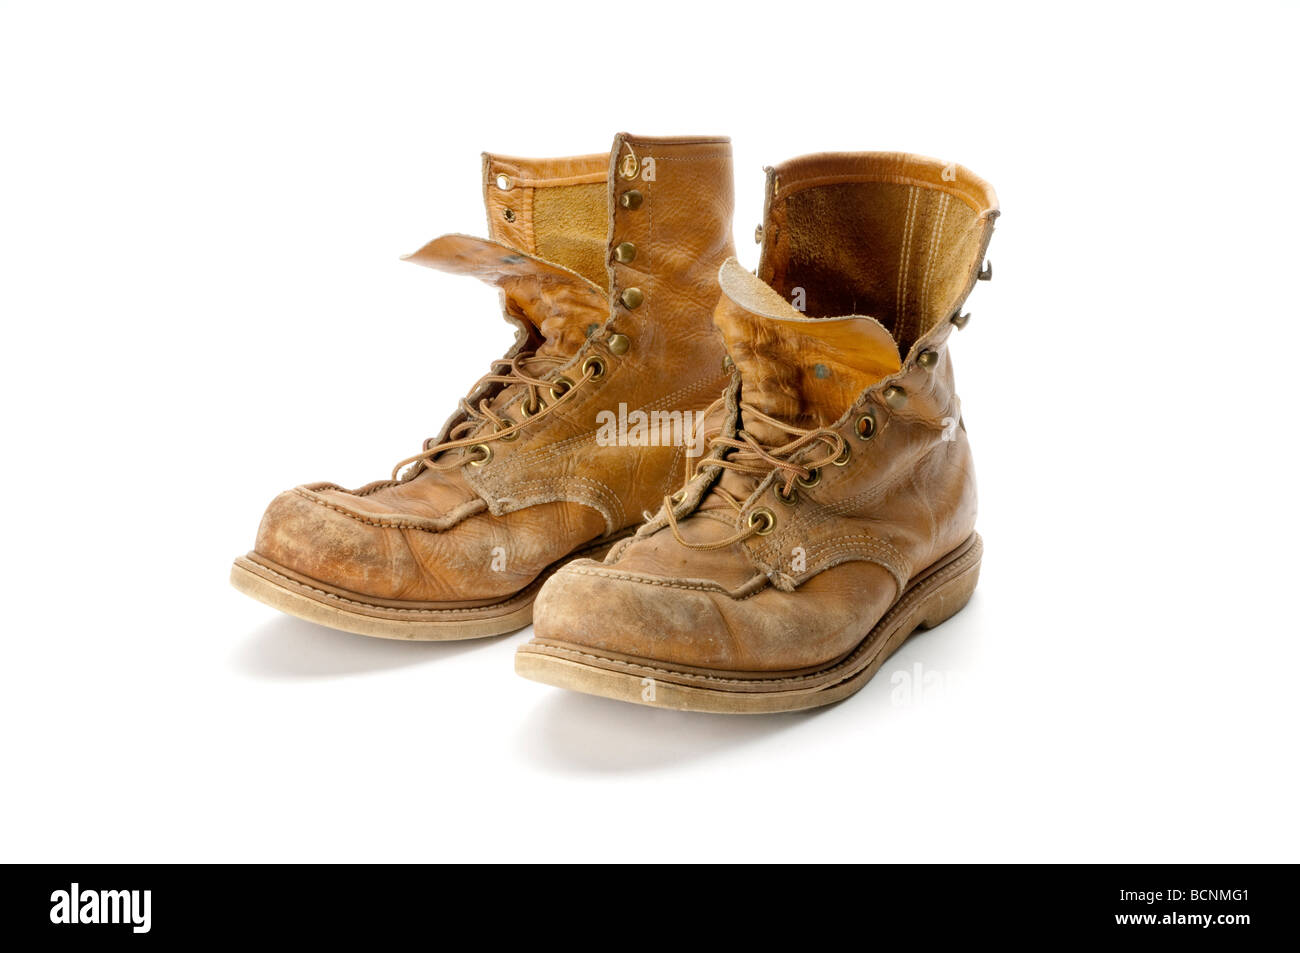 old pair of work boots on white background - Stock Image